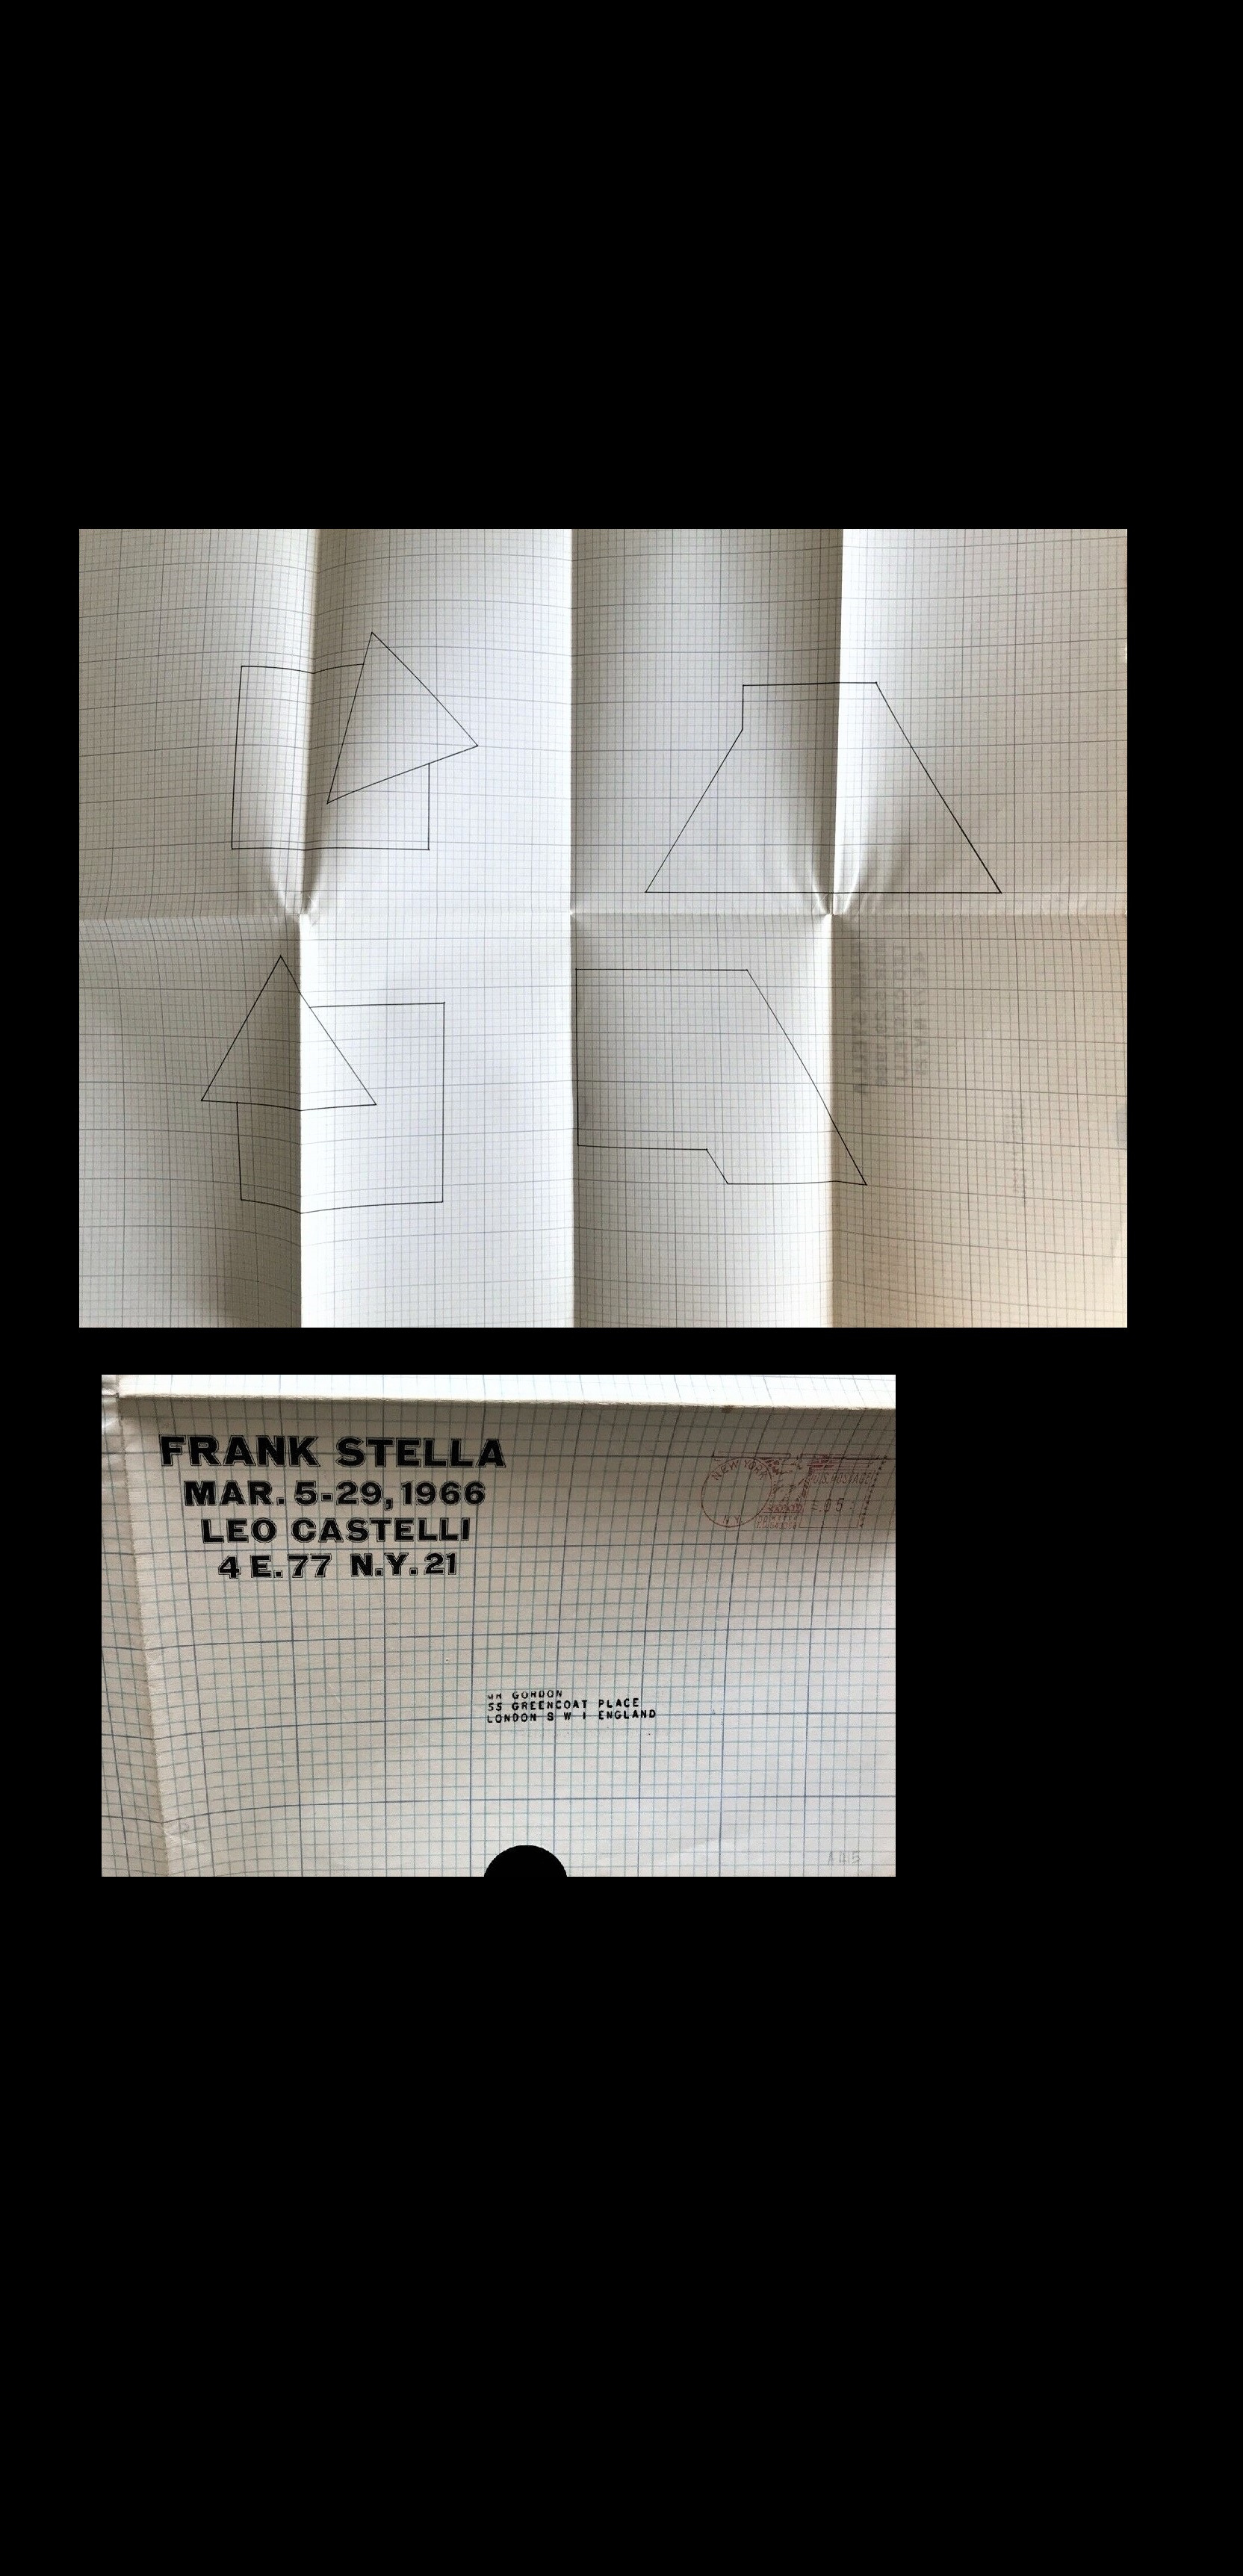 """FRANK STELLA"" , 1966, Exhibit Invite/Announcement, Leo Castelli Gallery NYC,"